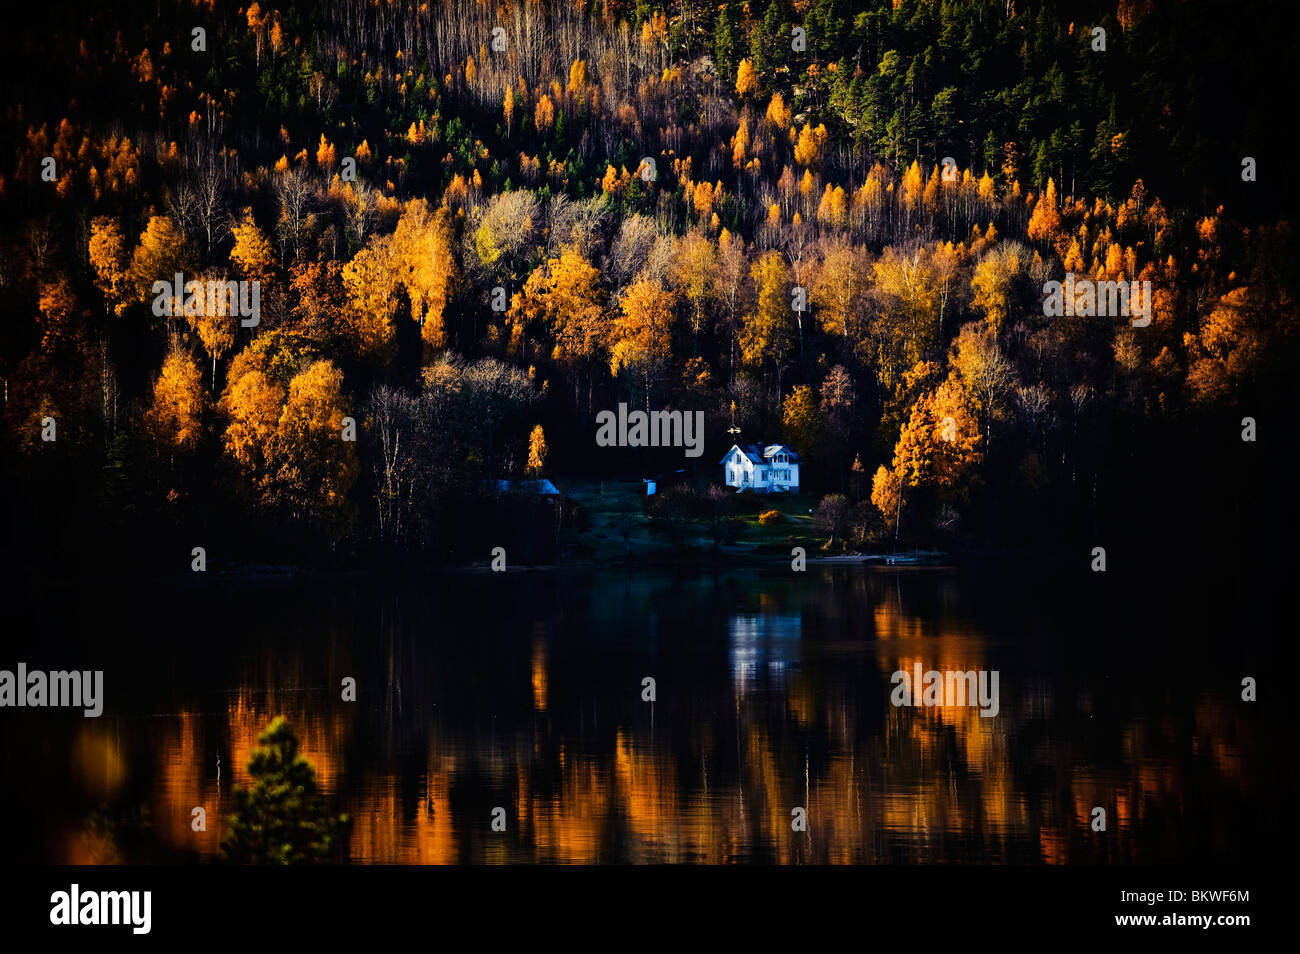 Remote house in the forest by lake - Stock Image